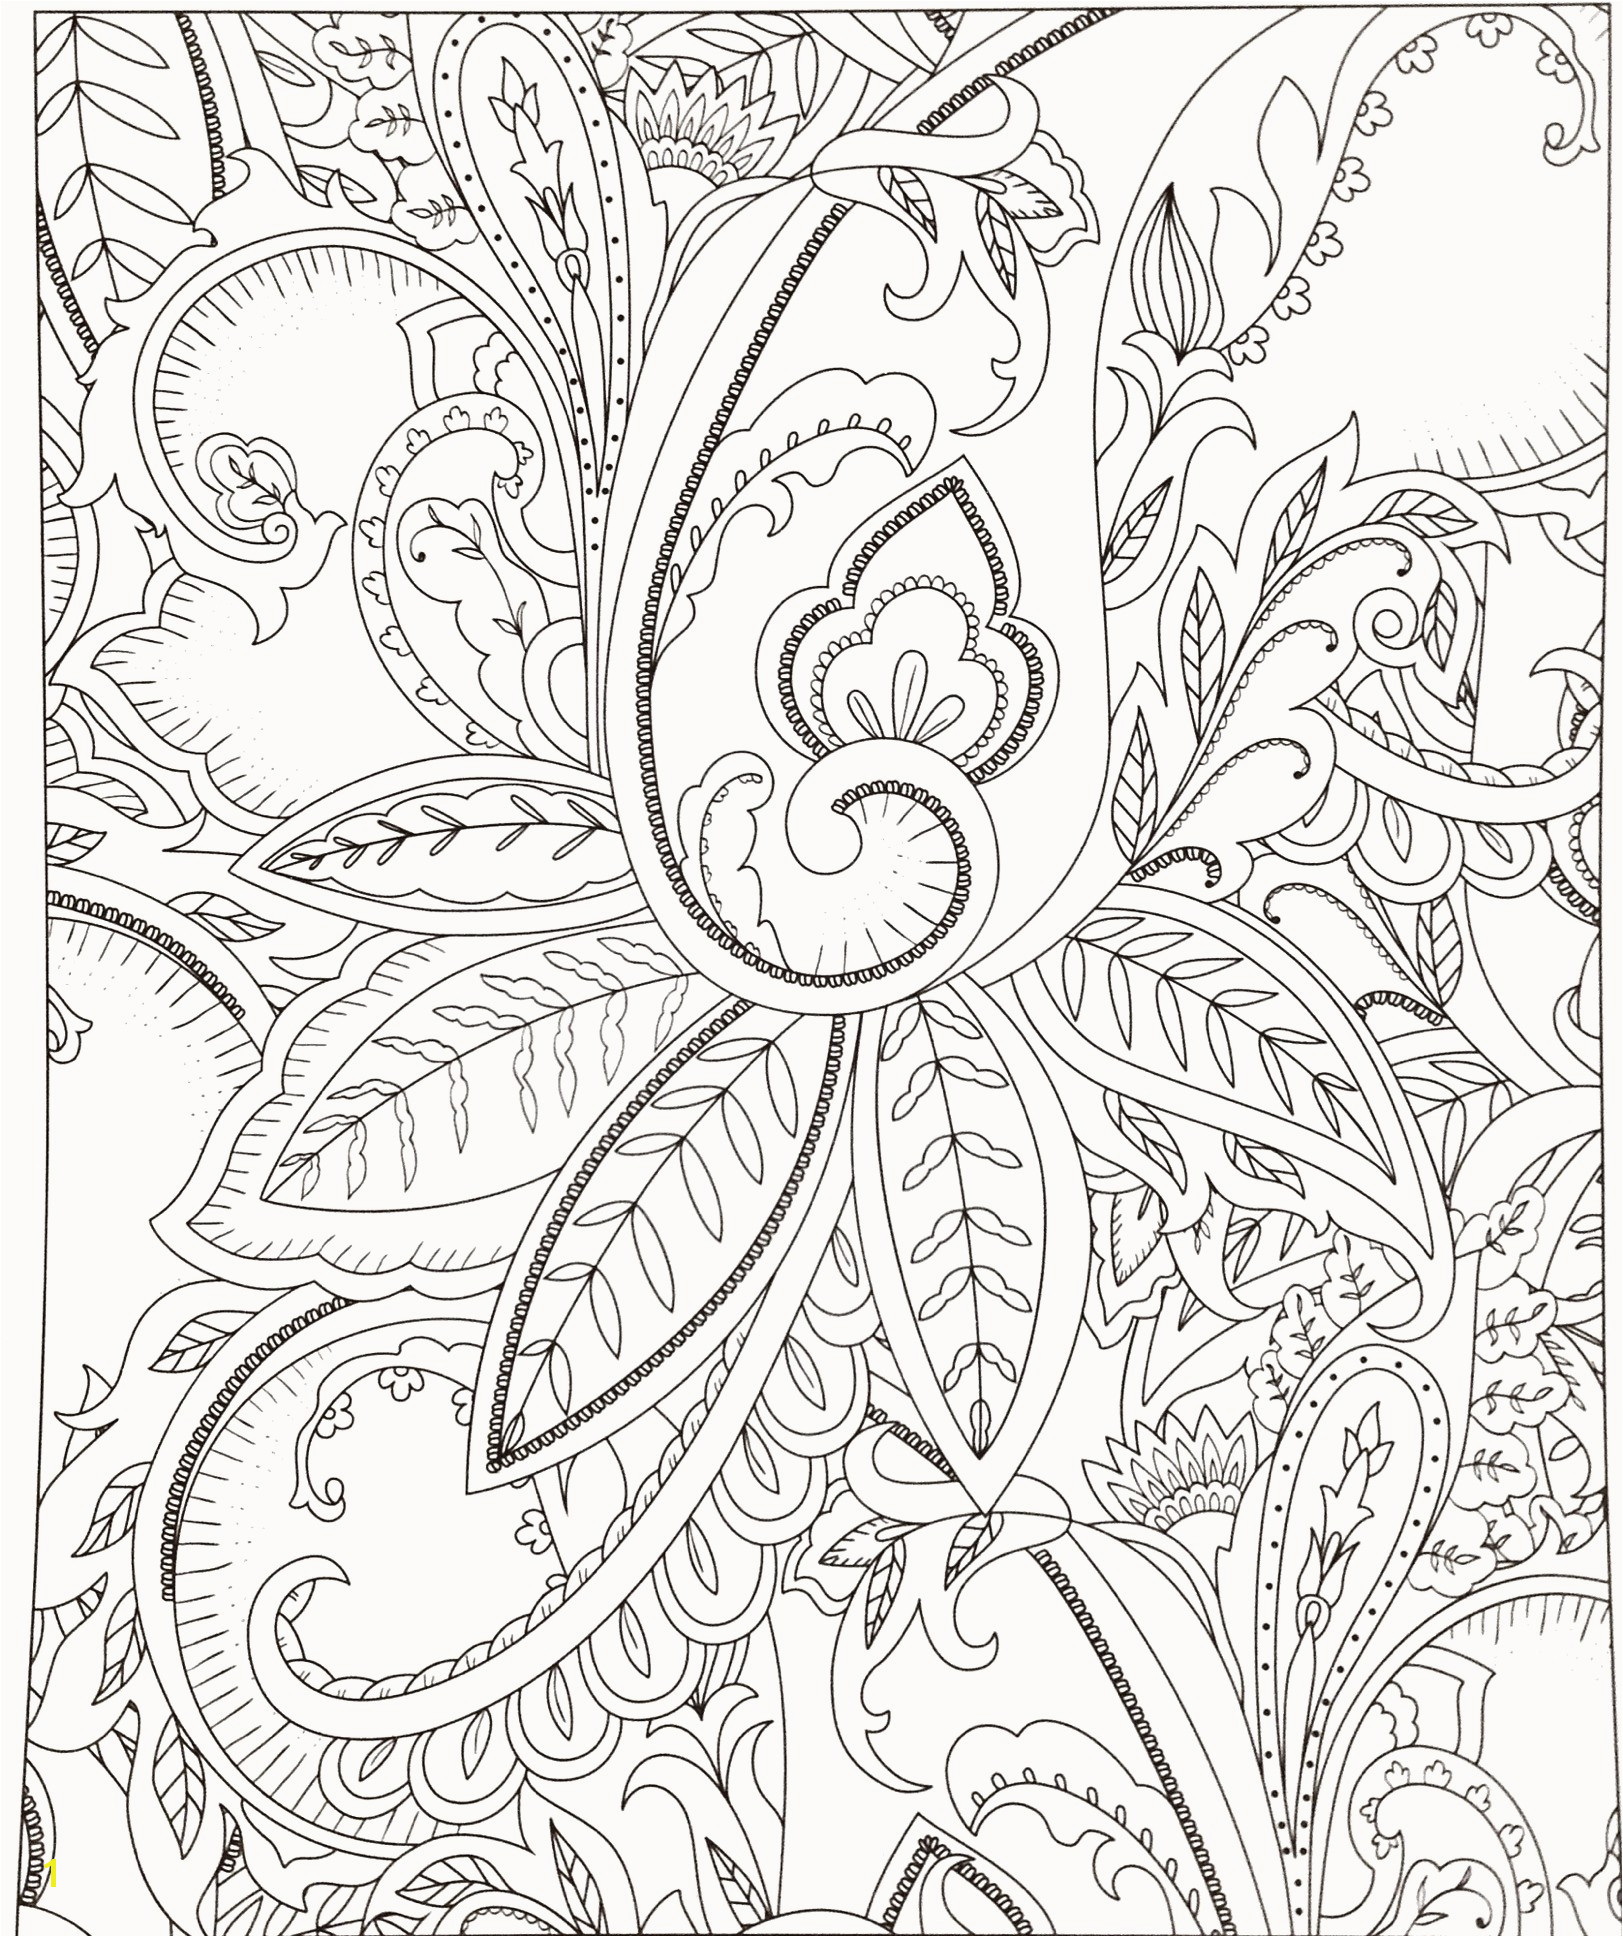 Swear Word Coloring Pages Printable Free Lovely Coloring Pages the Word Peace Lovely Printable Cds 0d